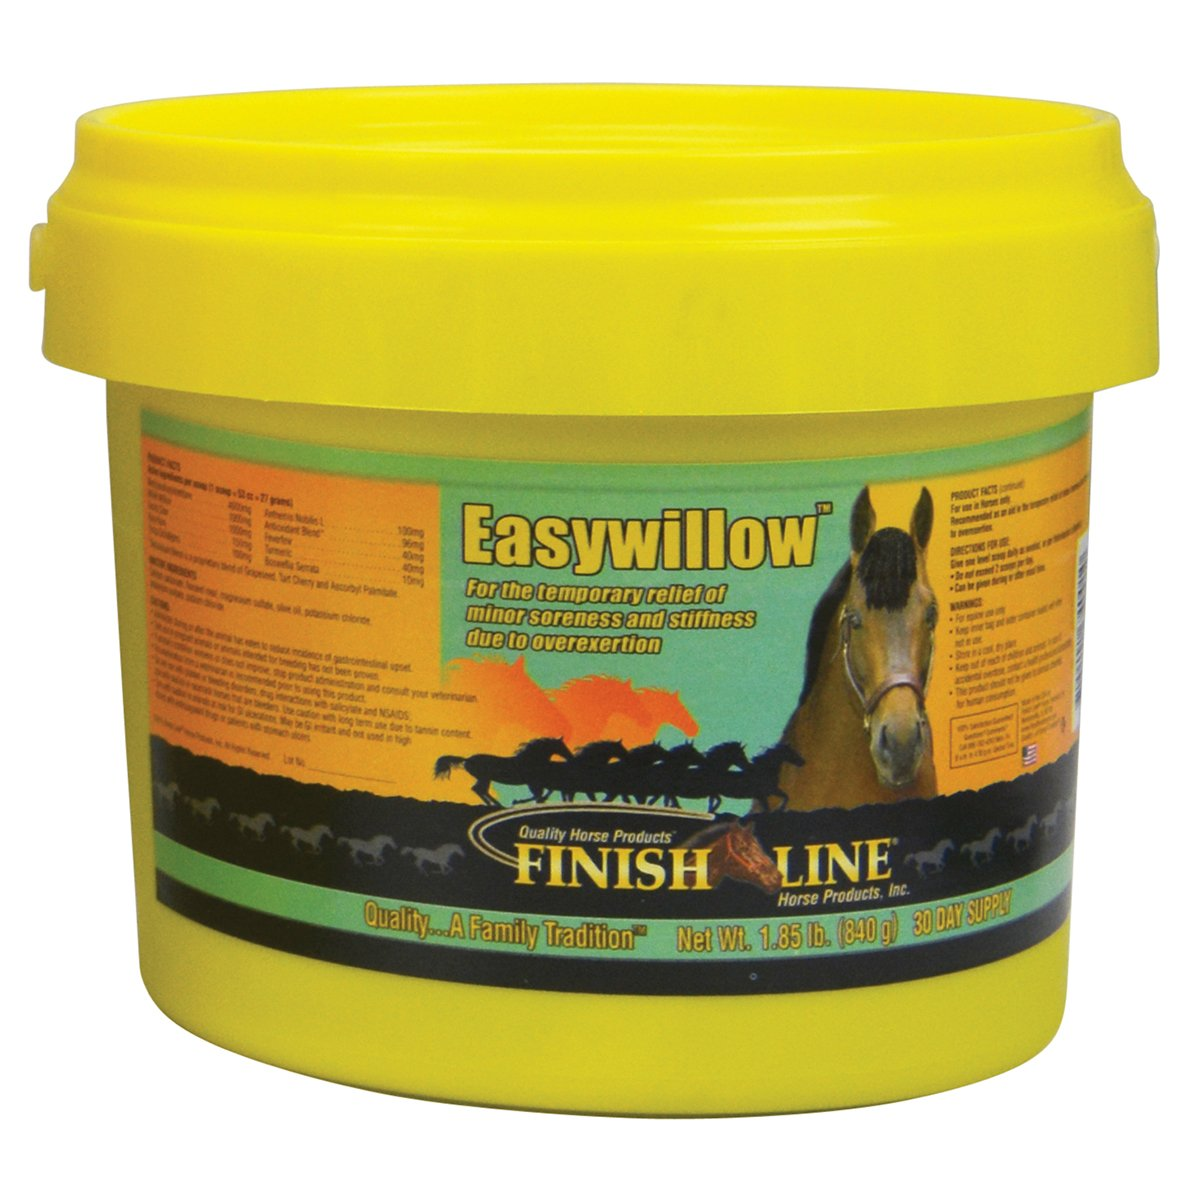 Finish Line Easywillow Pain Management 1.8 lbs